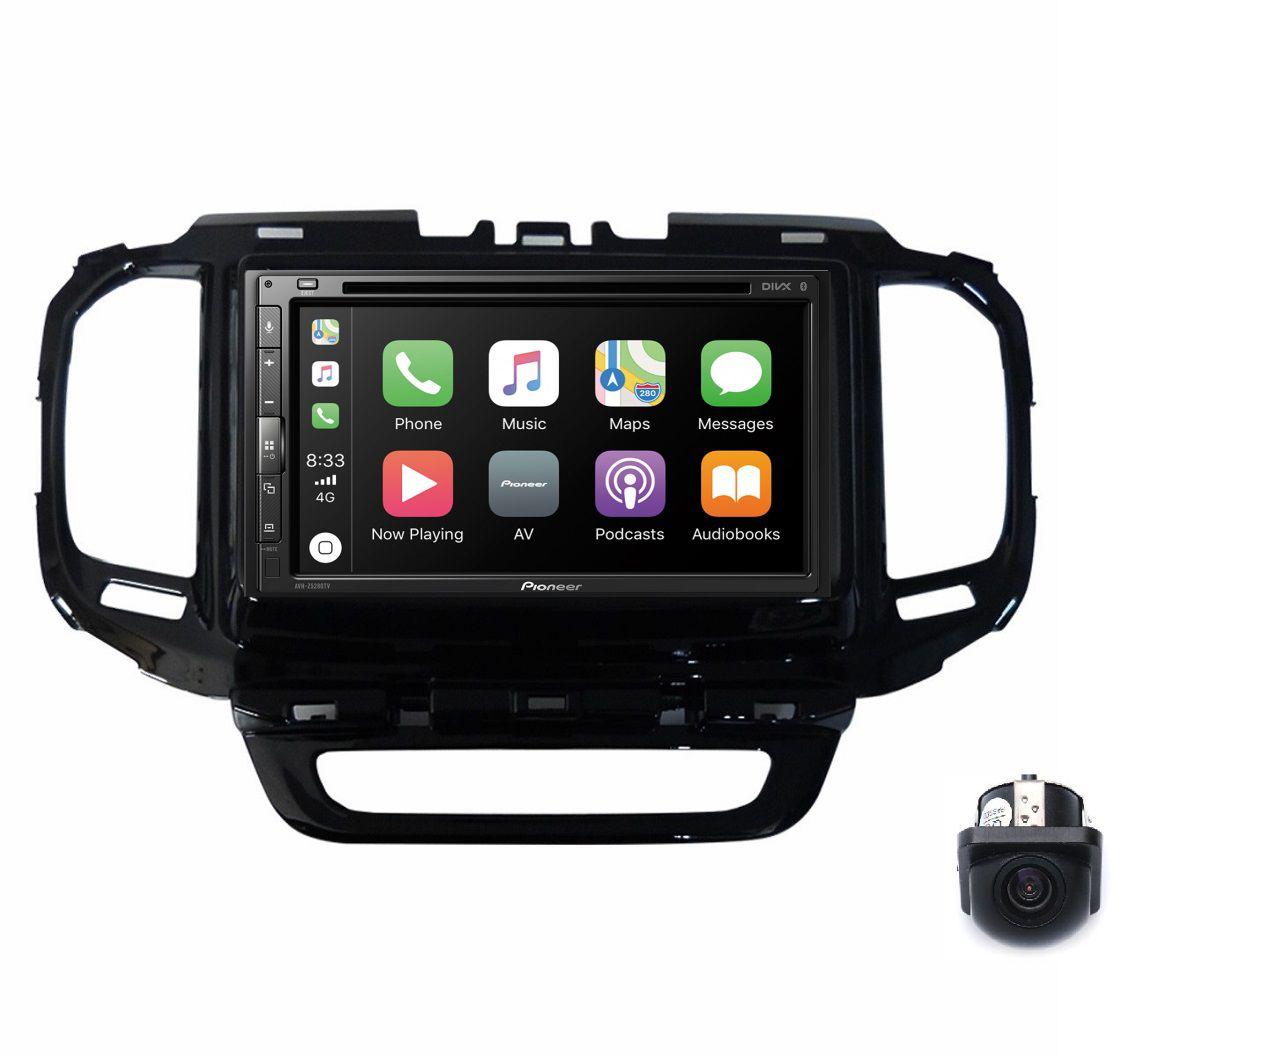 Central Multimidia Fiat Toro - Pioneer AVH-A5280TV + Interface de Volante + Moldura 2 Din -  Com DVD GPS Wase Mapa Bluetooth MP3 USB Ipod SD Card + Câmera de Ré Grátis